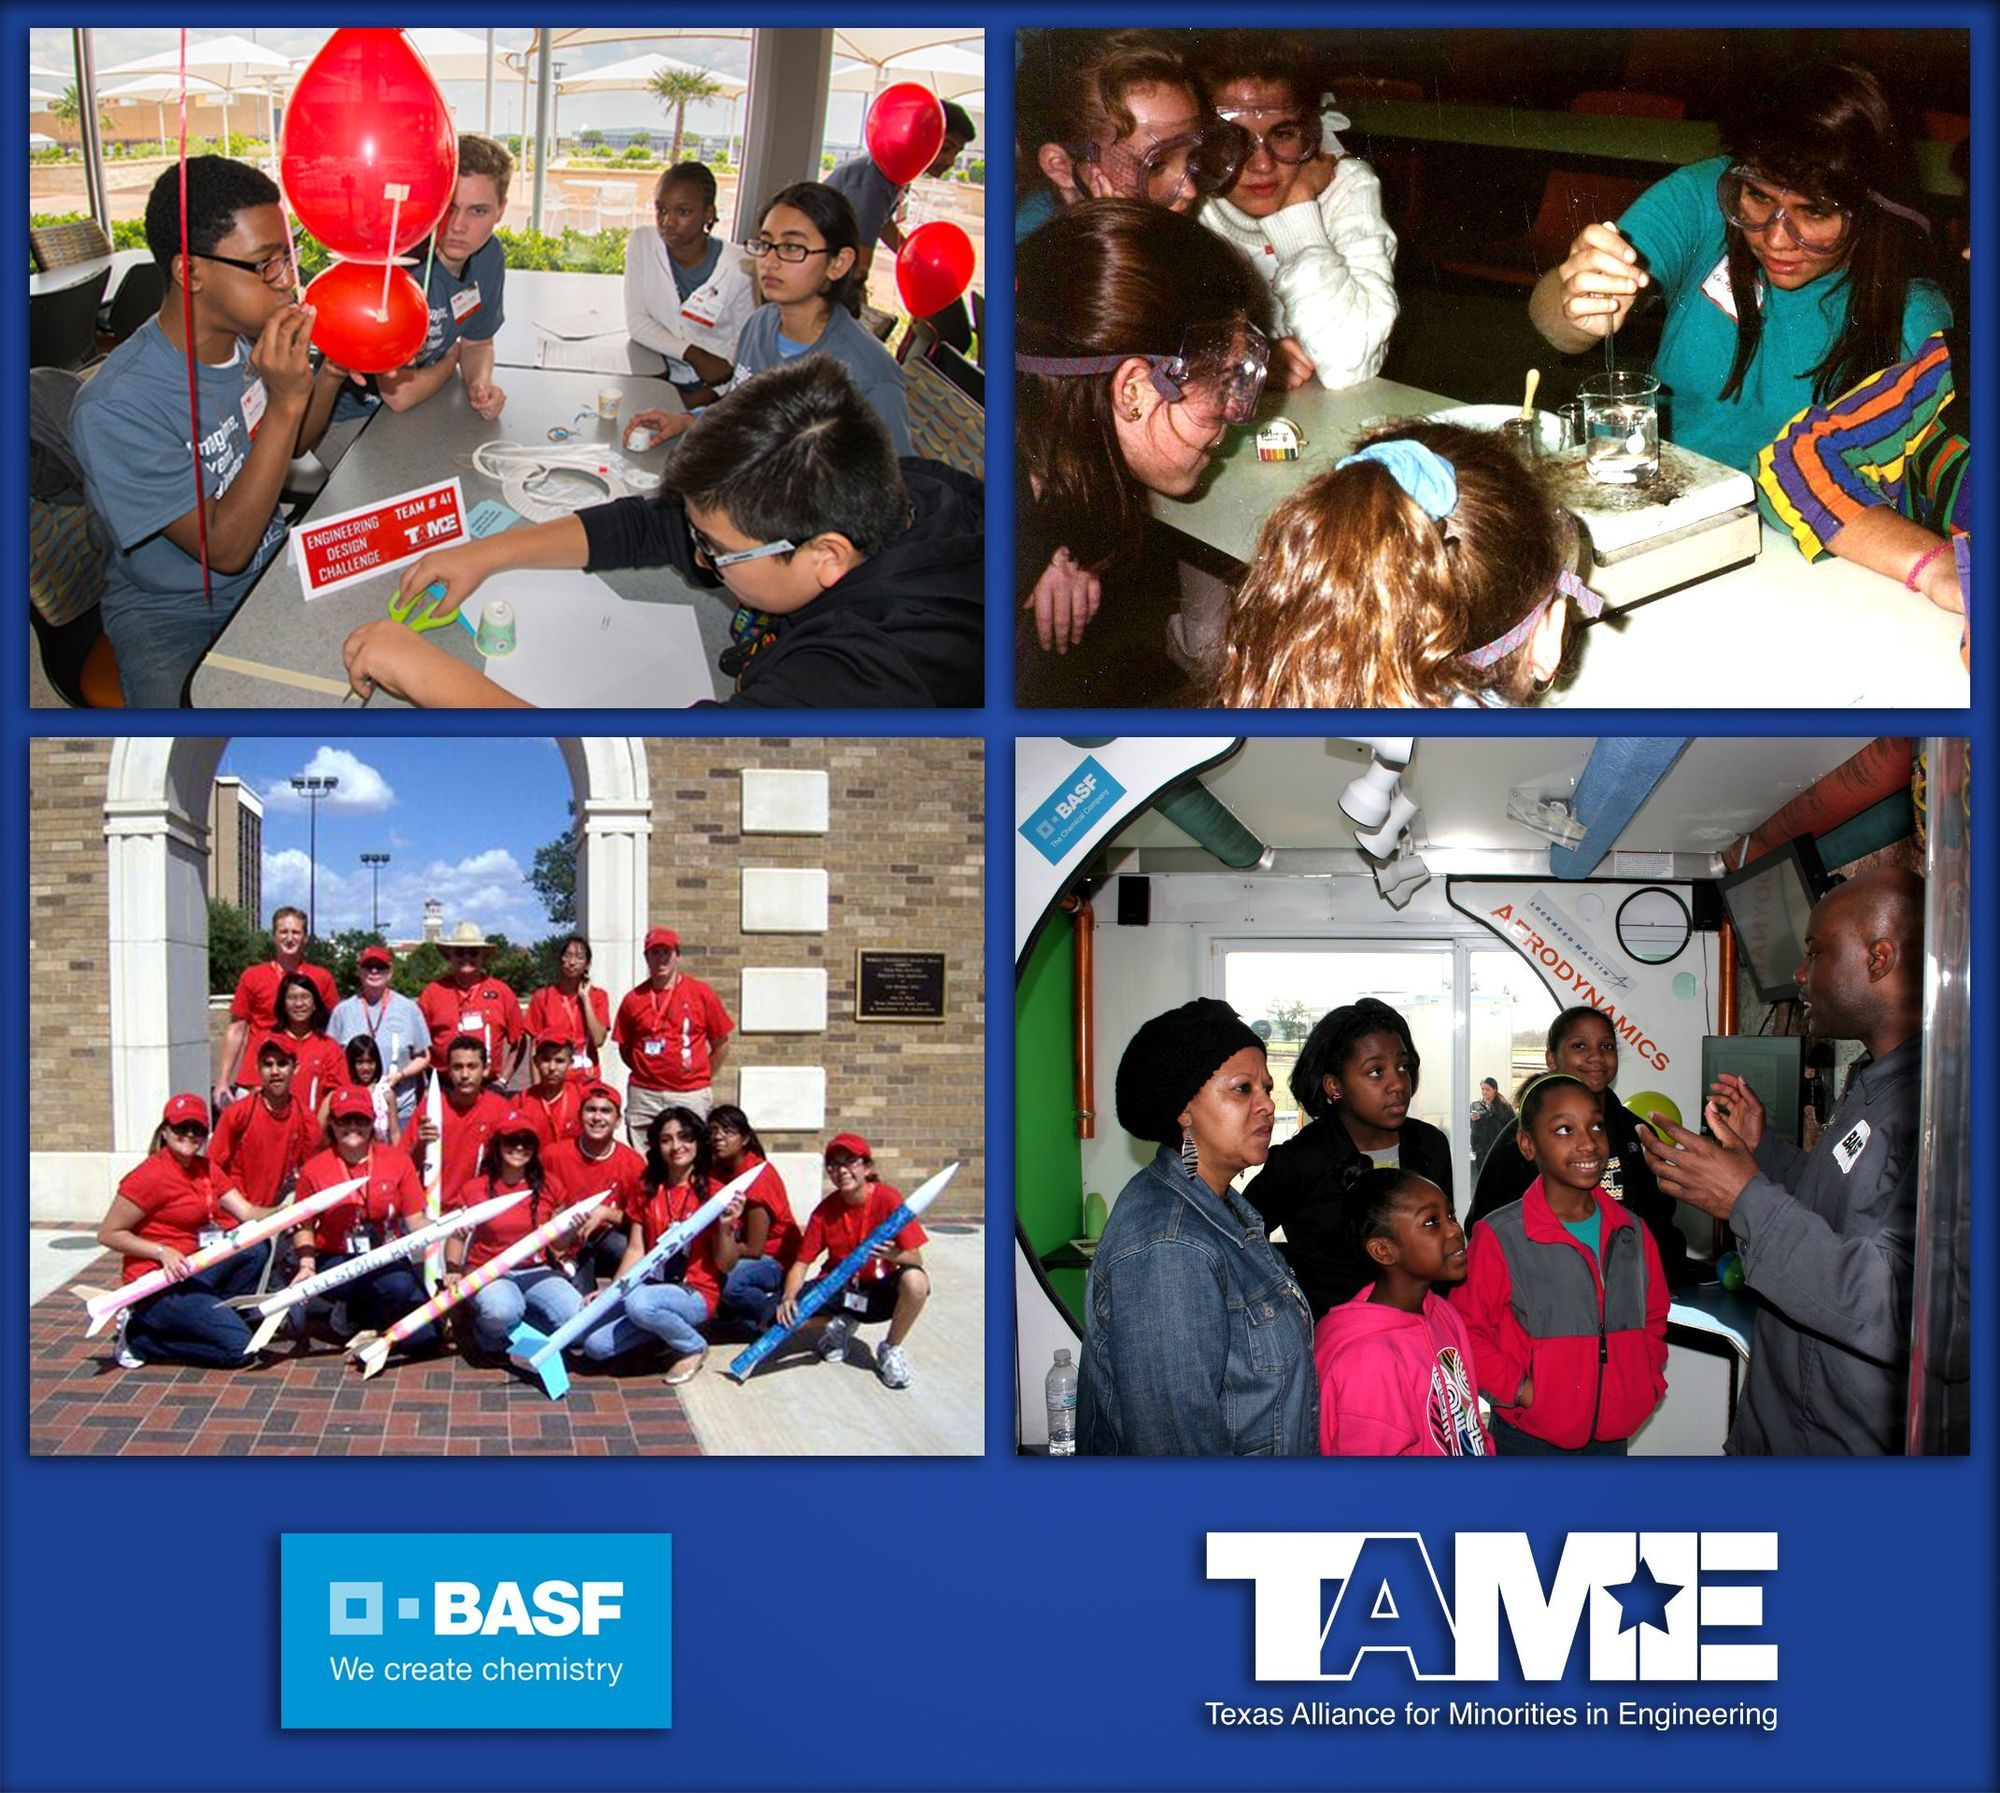 BASF Awards $25,000 to TAME to help students pursue careers in STEM